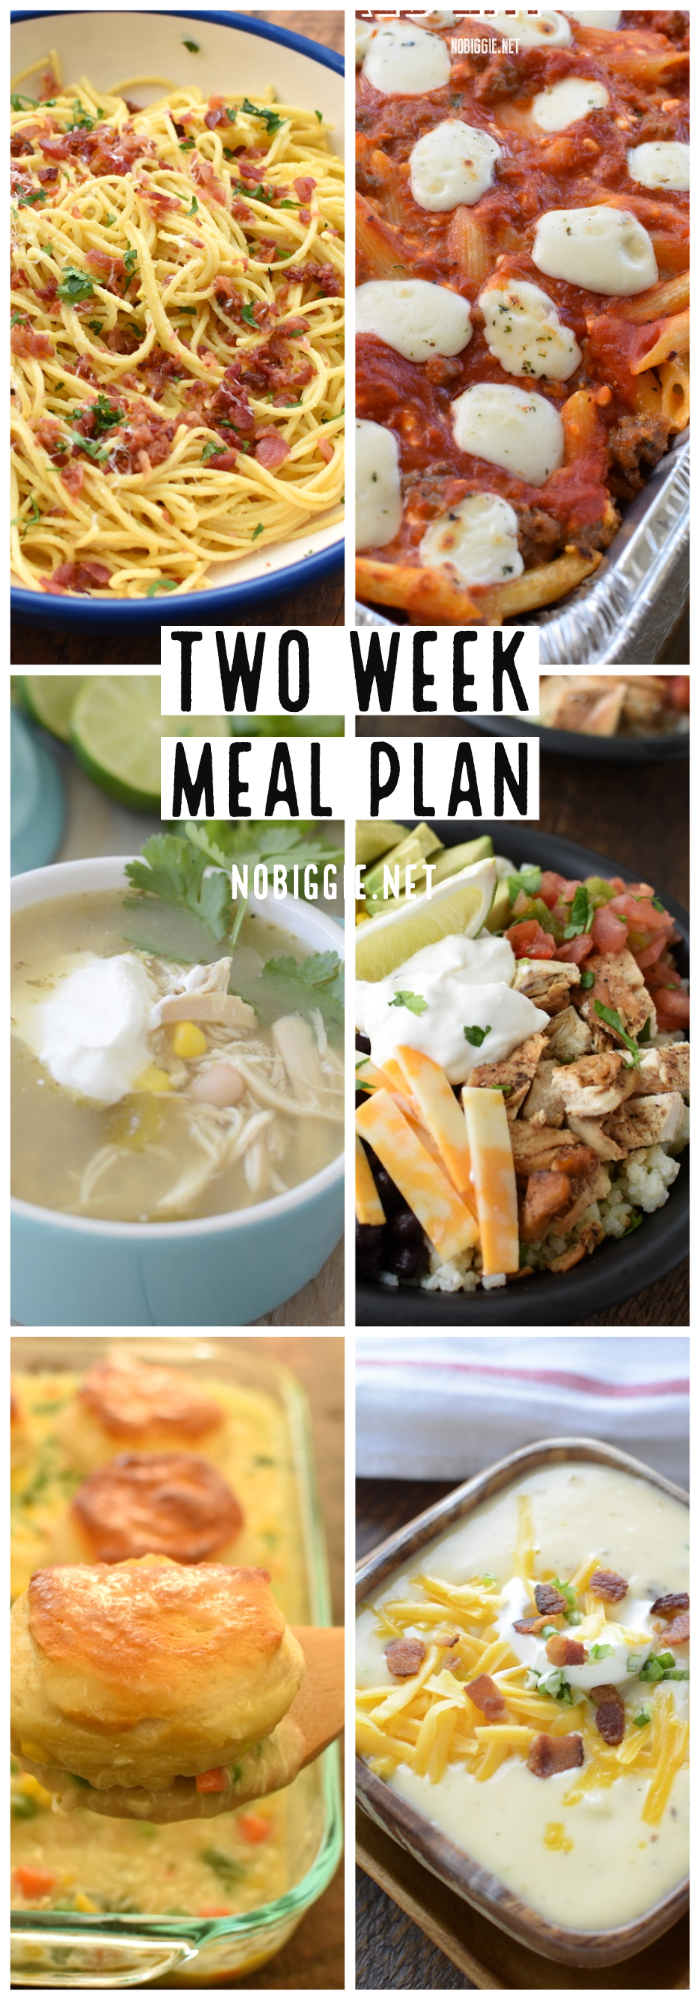 two week meal plan | NoBiggie.net